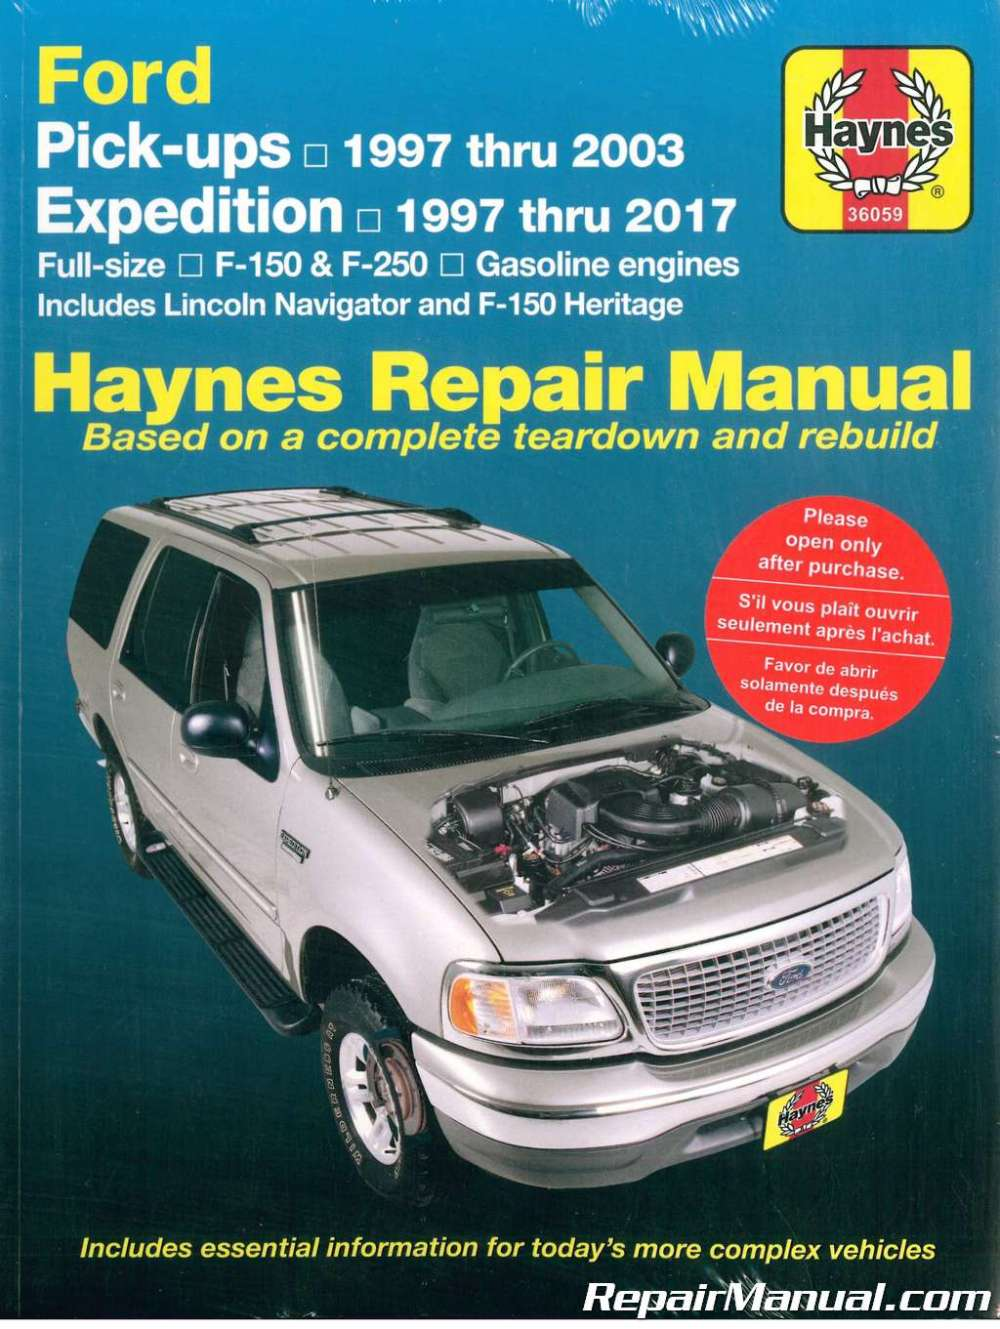 medium resolution of details about haynes ford pickup 1997 2003 expedition 1997 2017 repair manual h36059